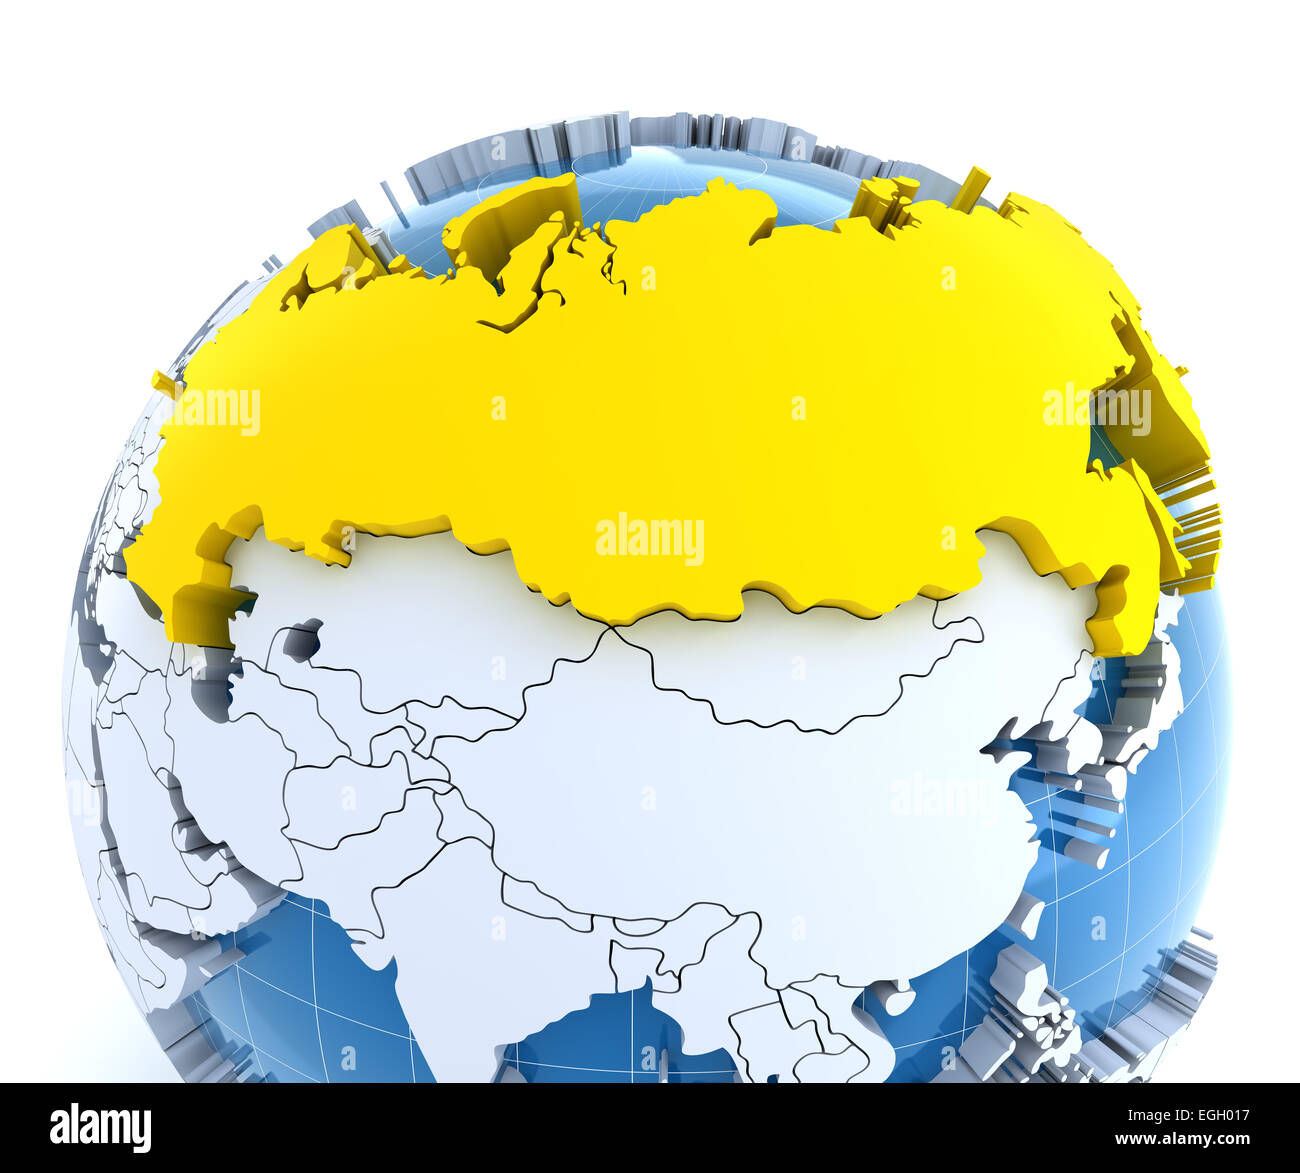 Russia Map Globe Stock Photos & Russia Map Globe Stock Images - Alamy